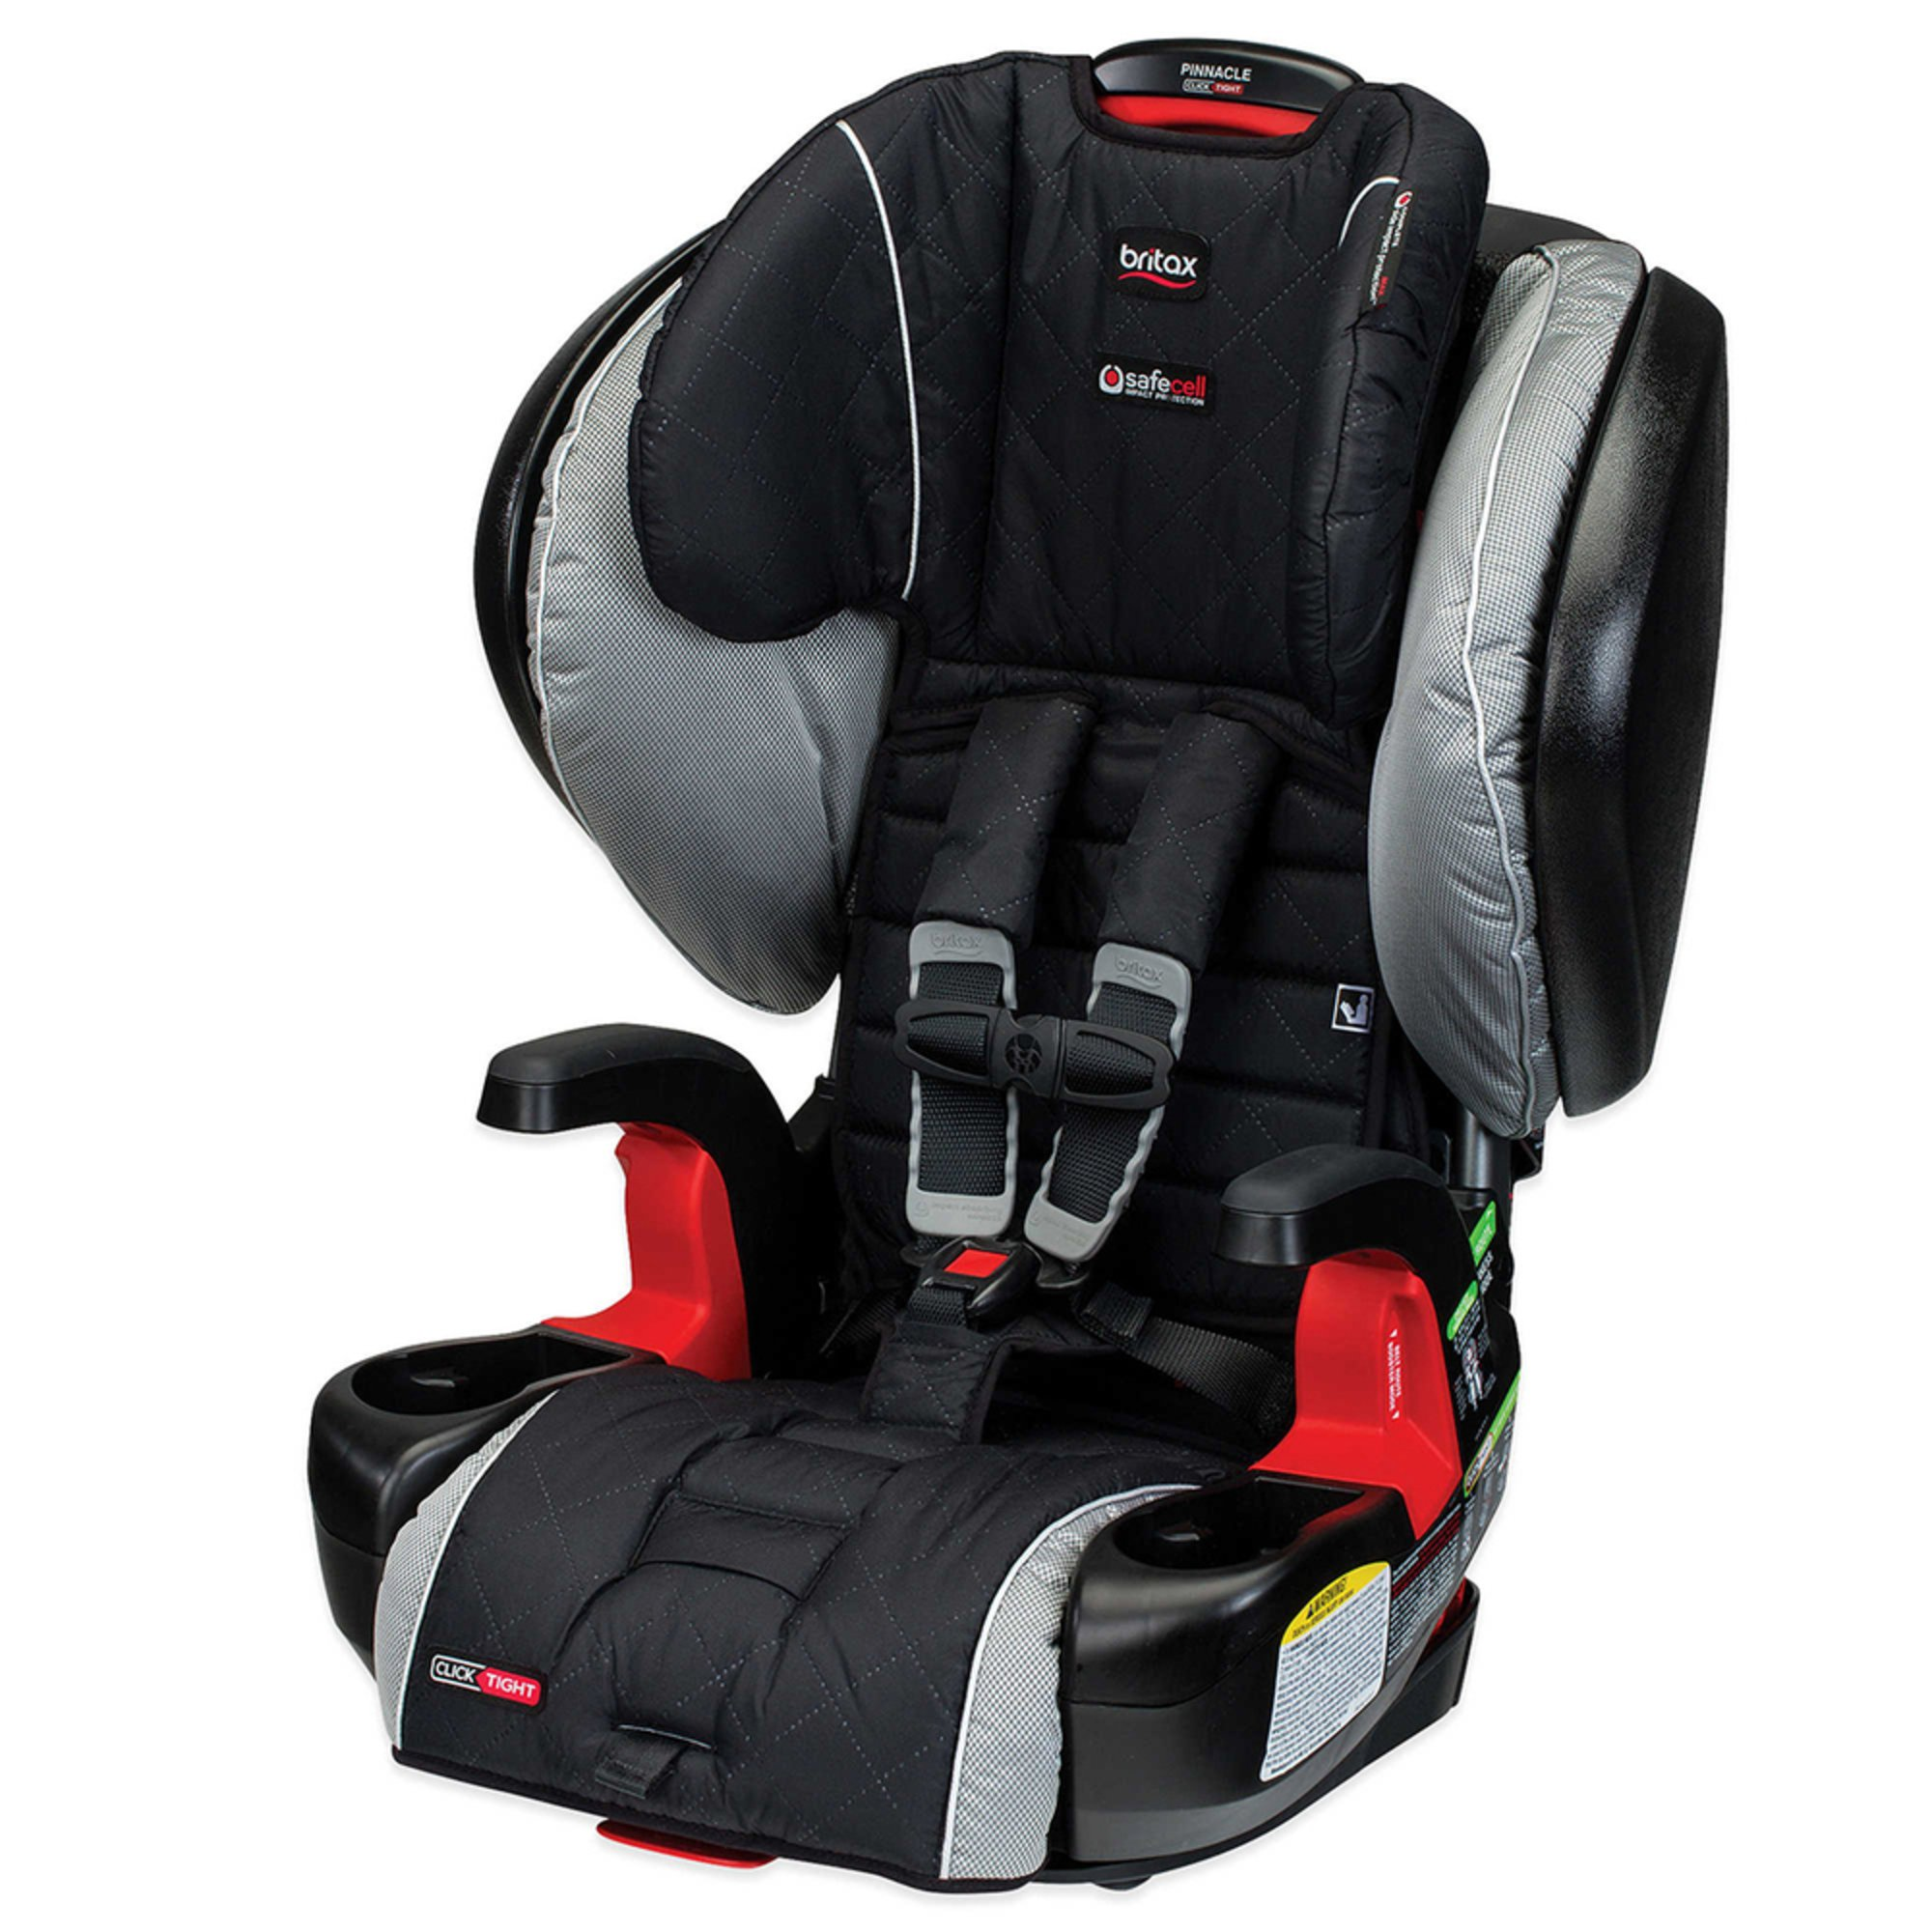 britax pinnacle clicktight g1 1 harness 2 booster seat manhattan harness booster seats baby. Black Bedroom Furniture Sets. Home Design Ideas